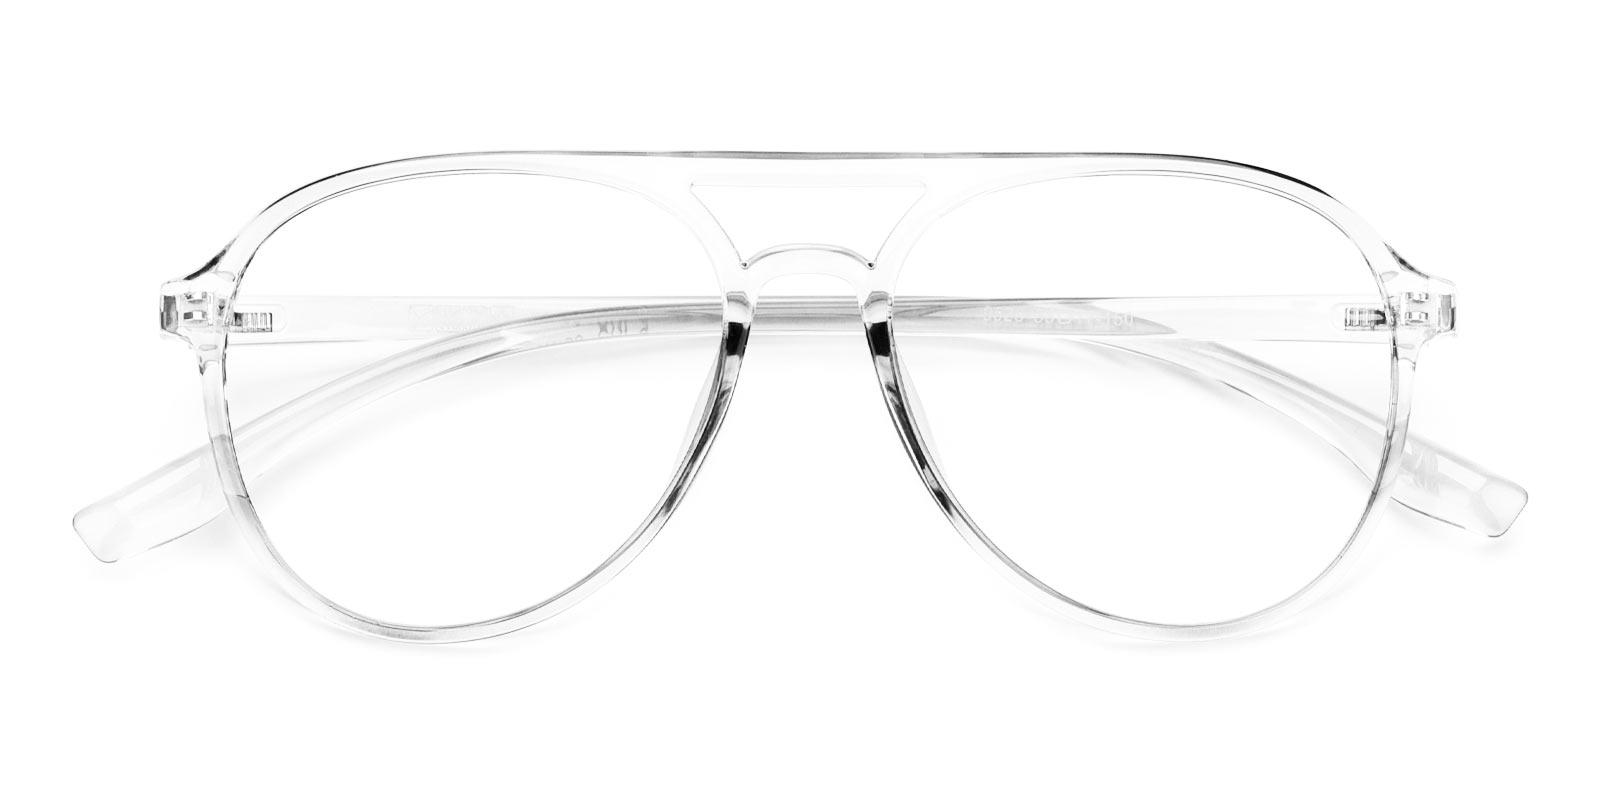 Mitchell-Translucent-Aviator-TR-Eyeglasses-detail